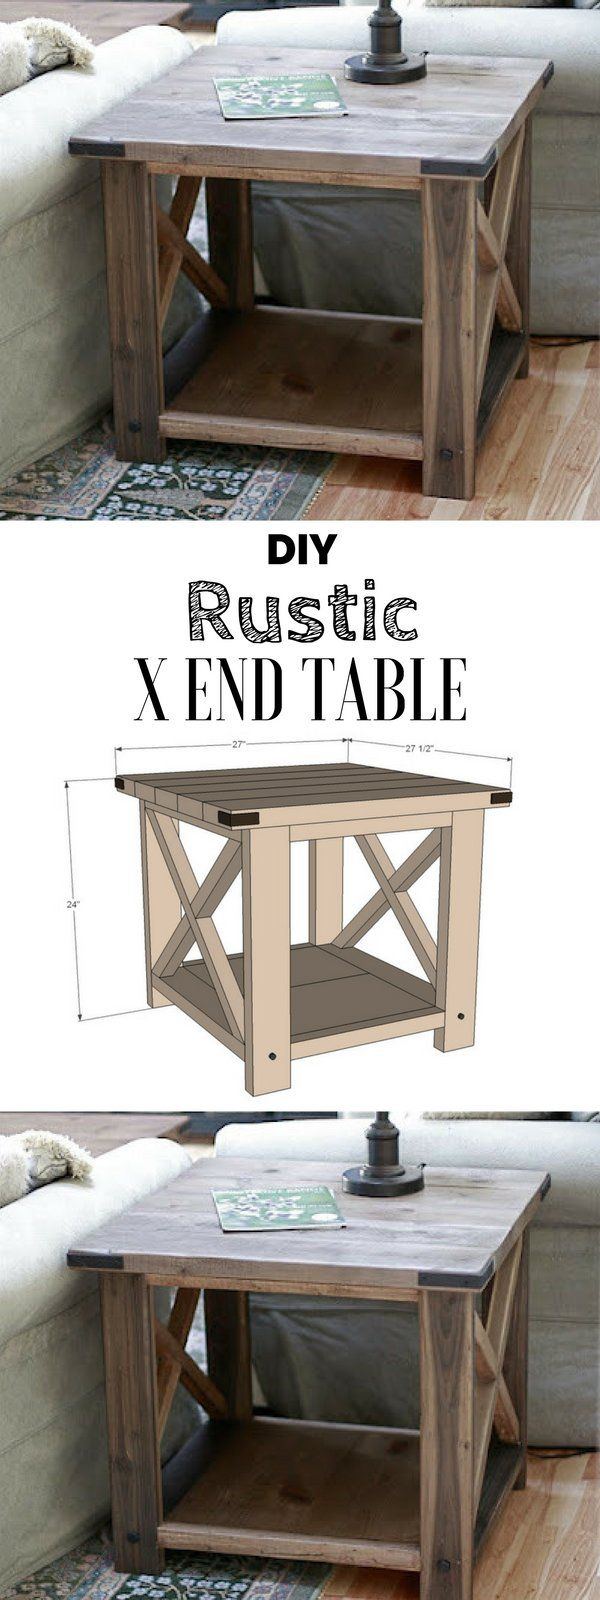 15 Easy DIY Tables That You Can Build on a Budget